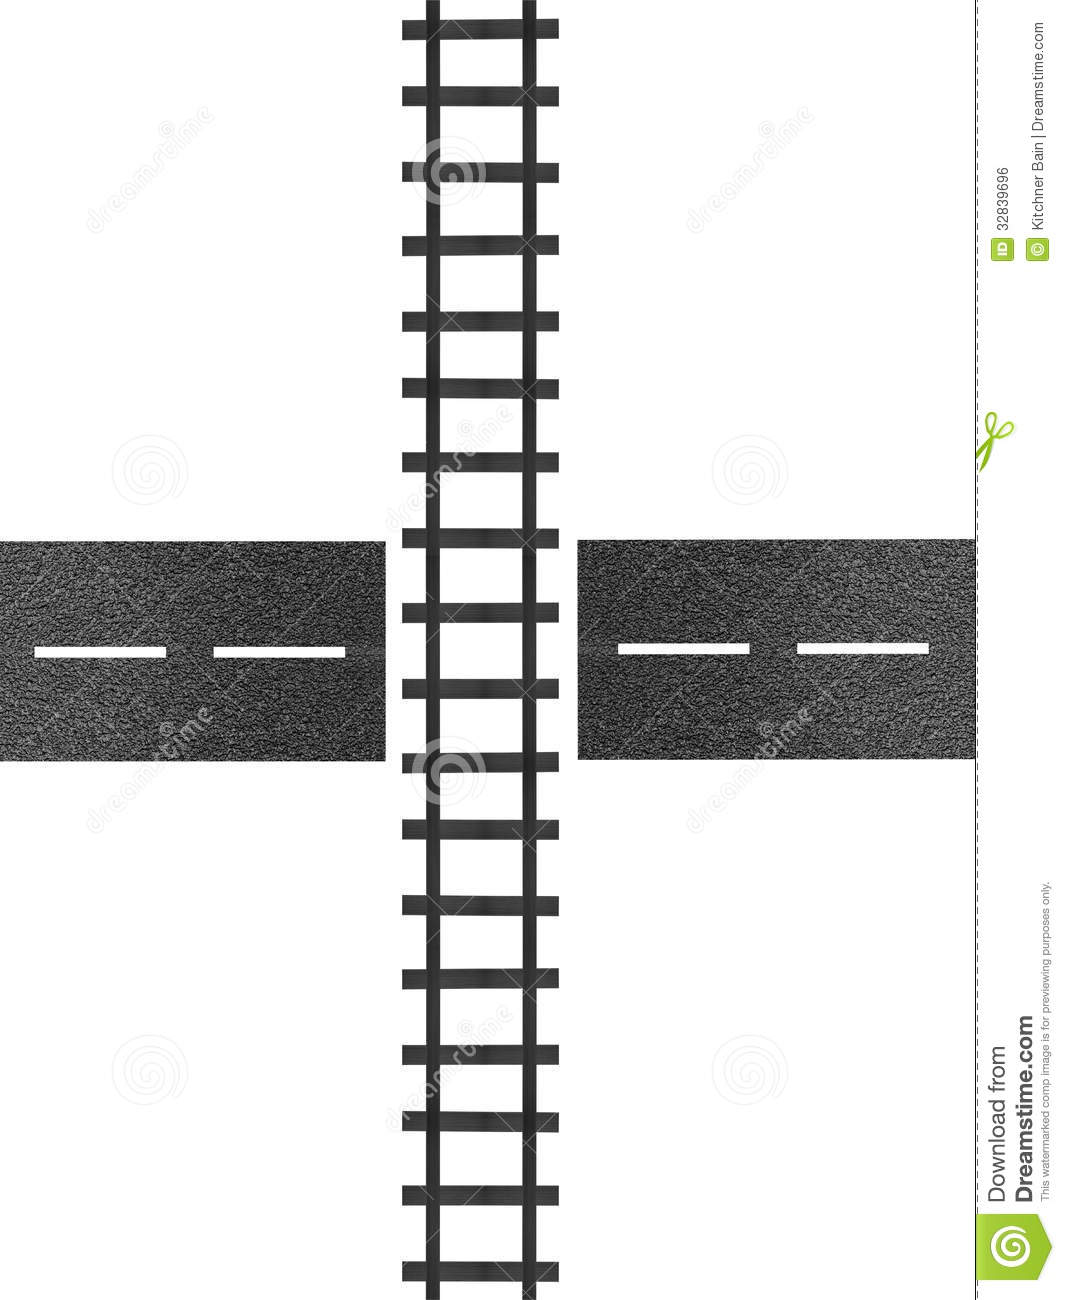 Railways clipart horizontal #8